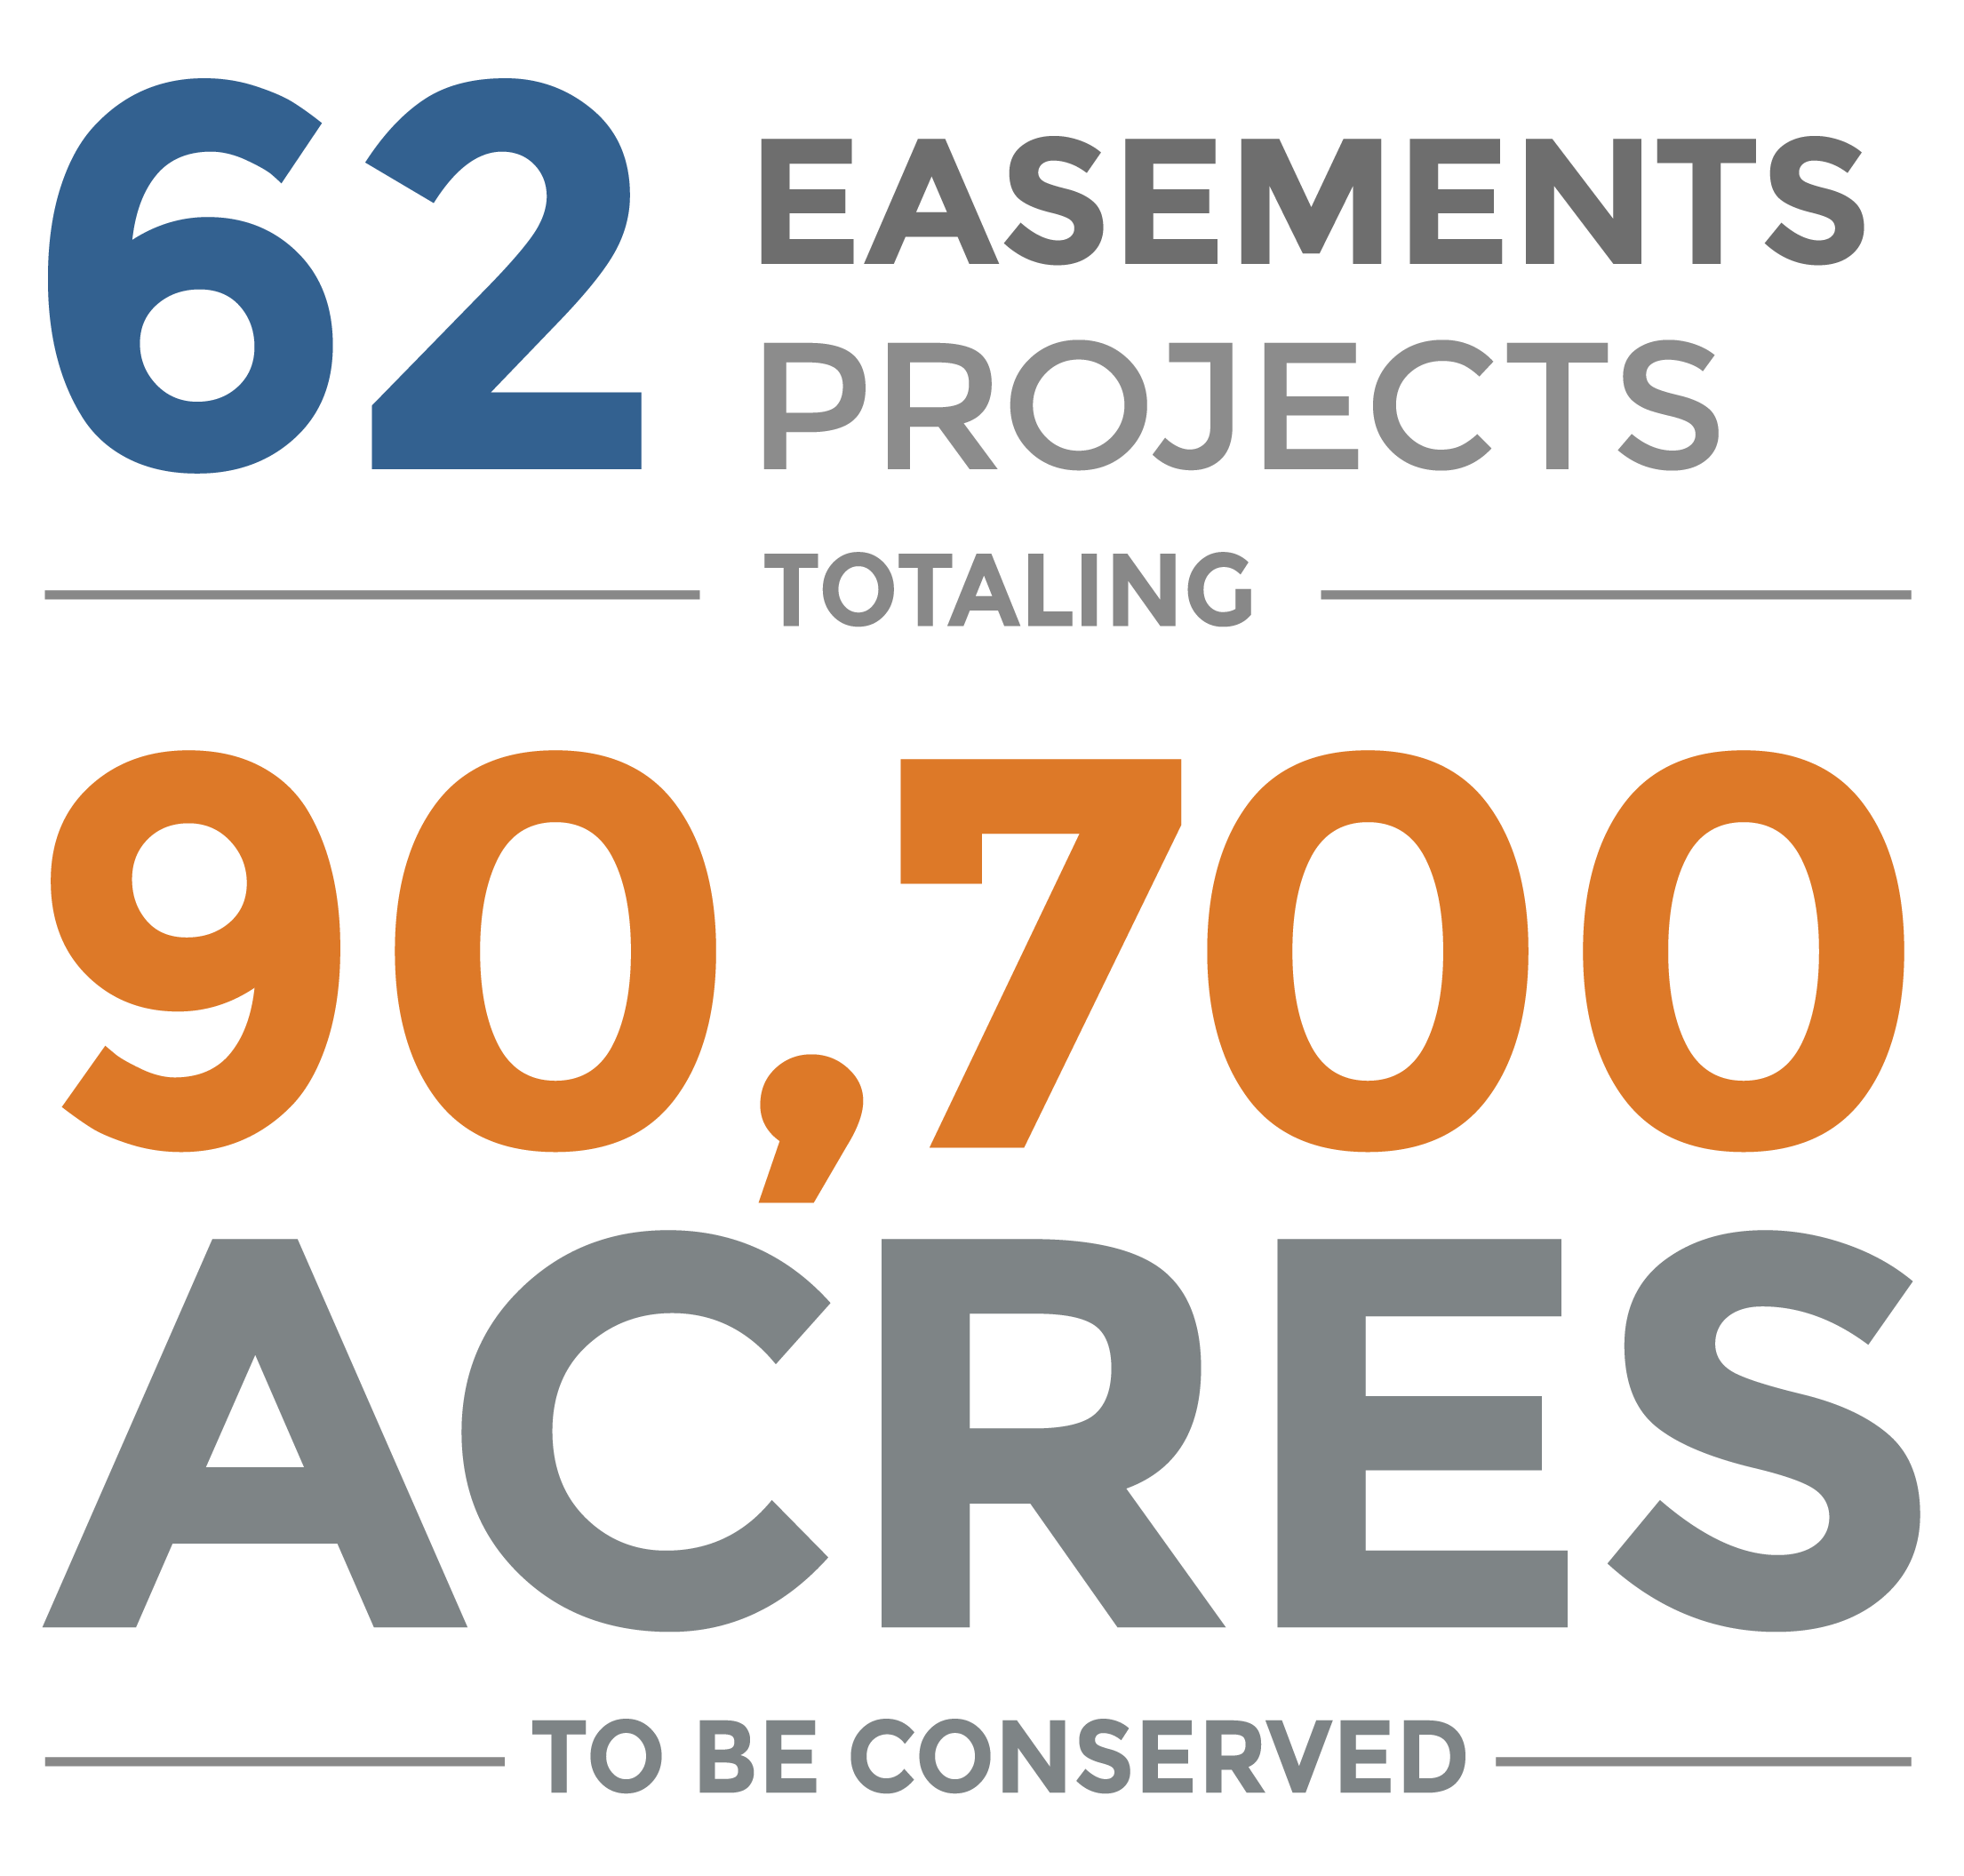 62 easement projects totaling 90,700 acres to be conserved.